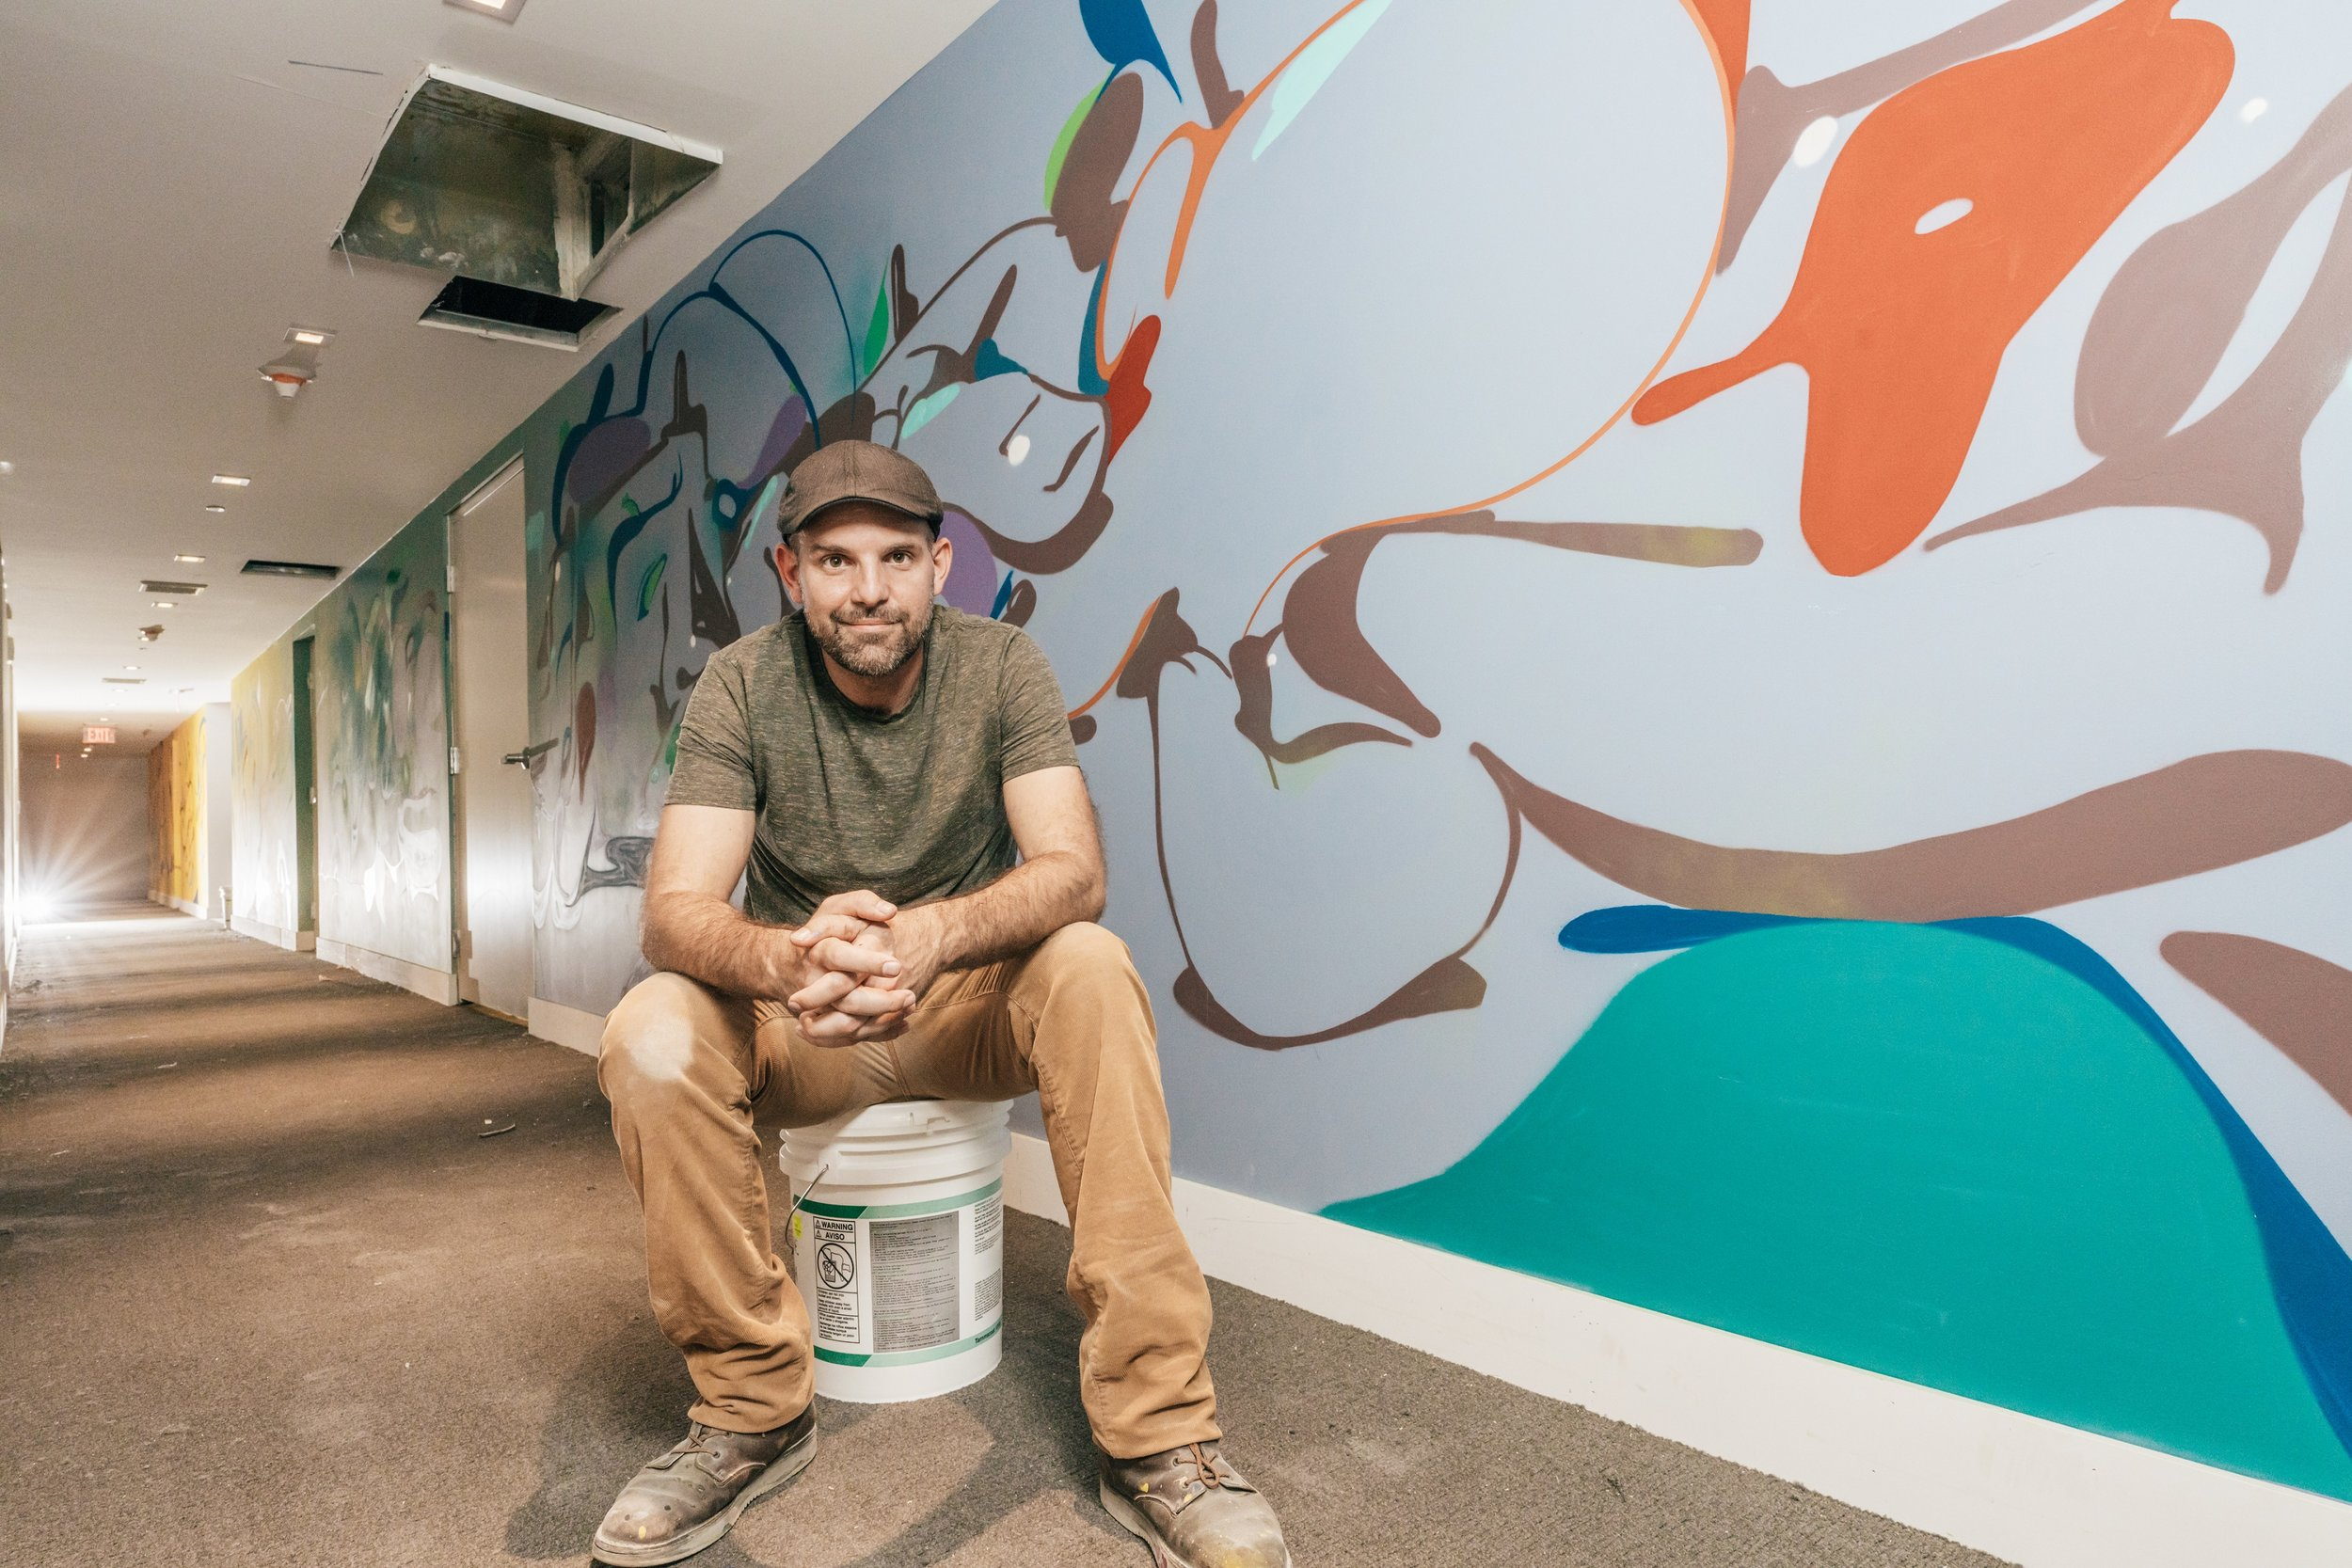 """CANVAS Reveals New Renderings Of Lifestyle Amenities & 1st Mural By Daniel """"Krave"""" Fila"""